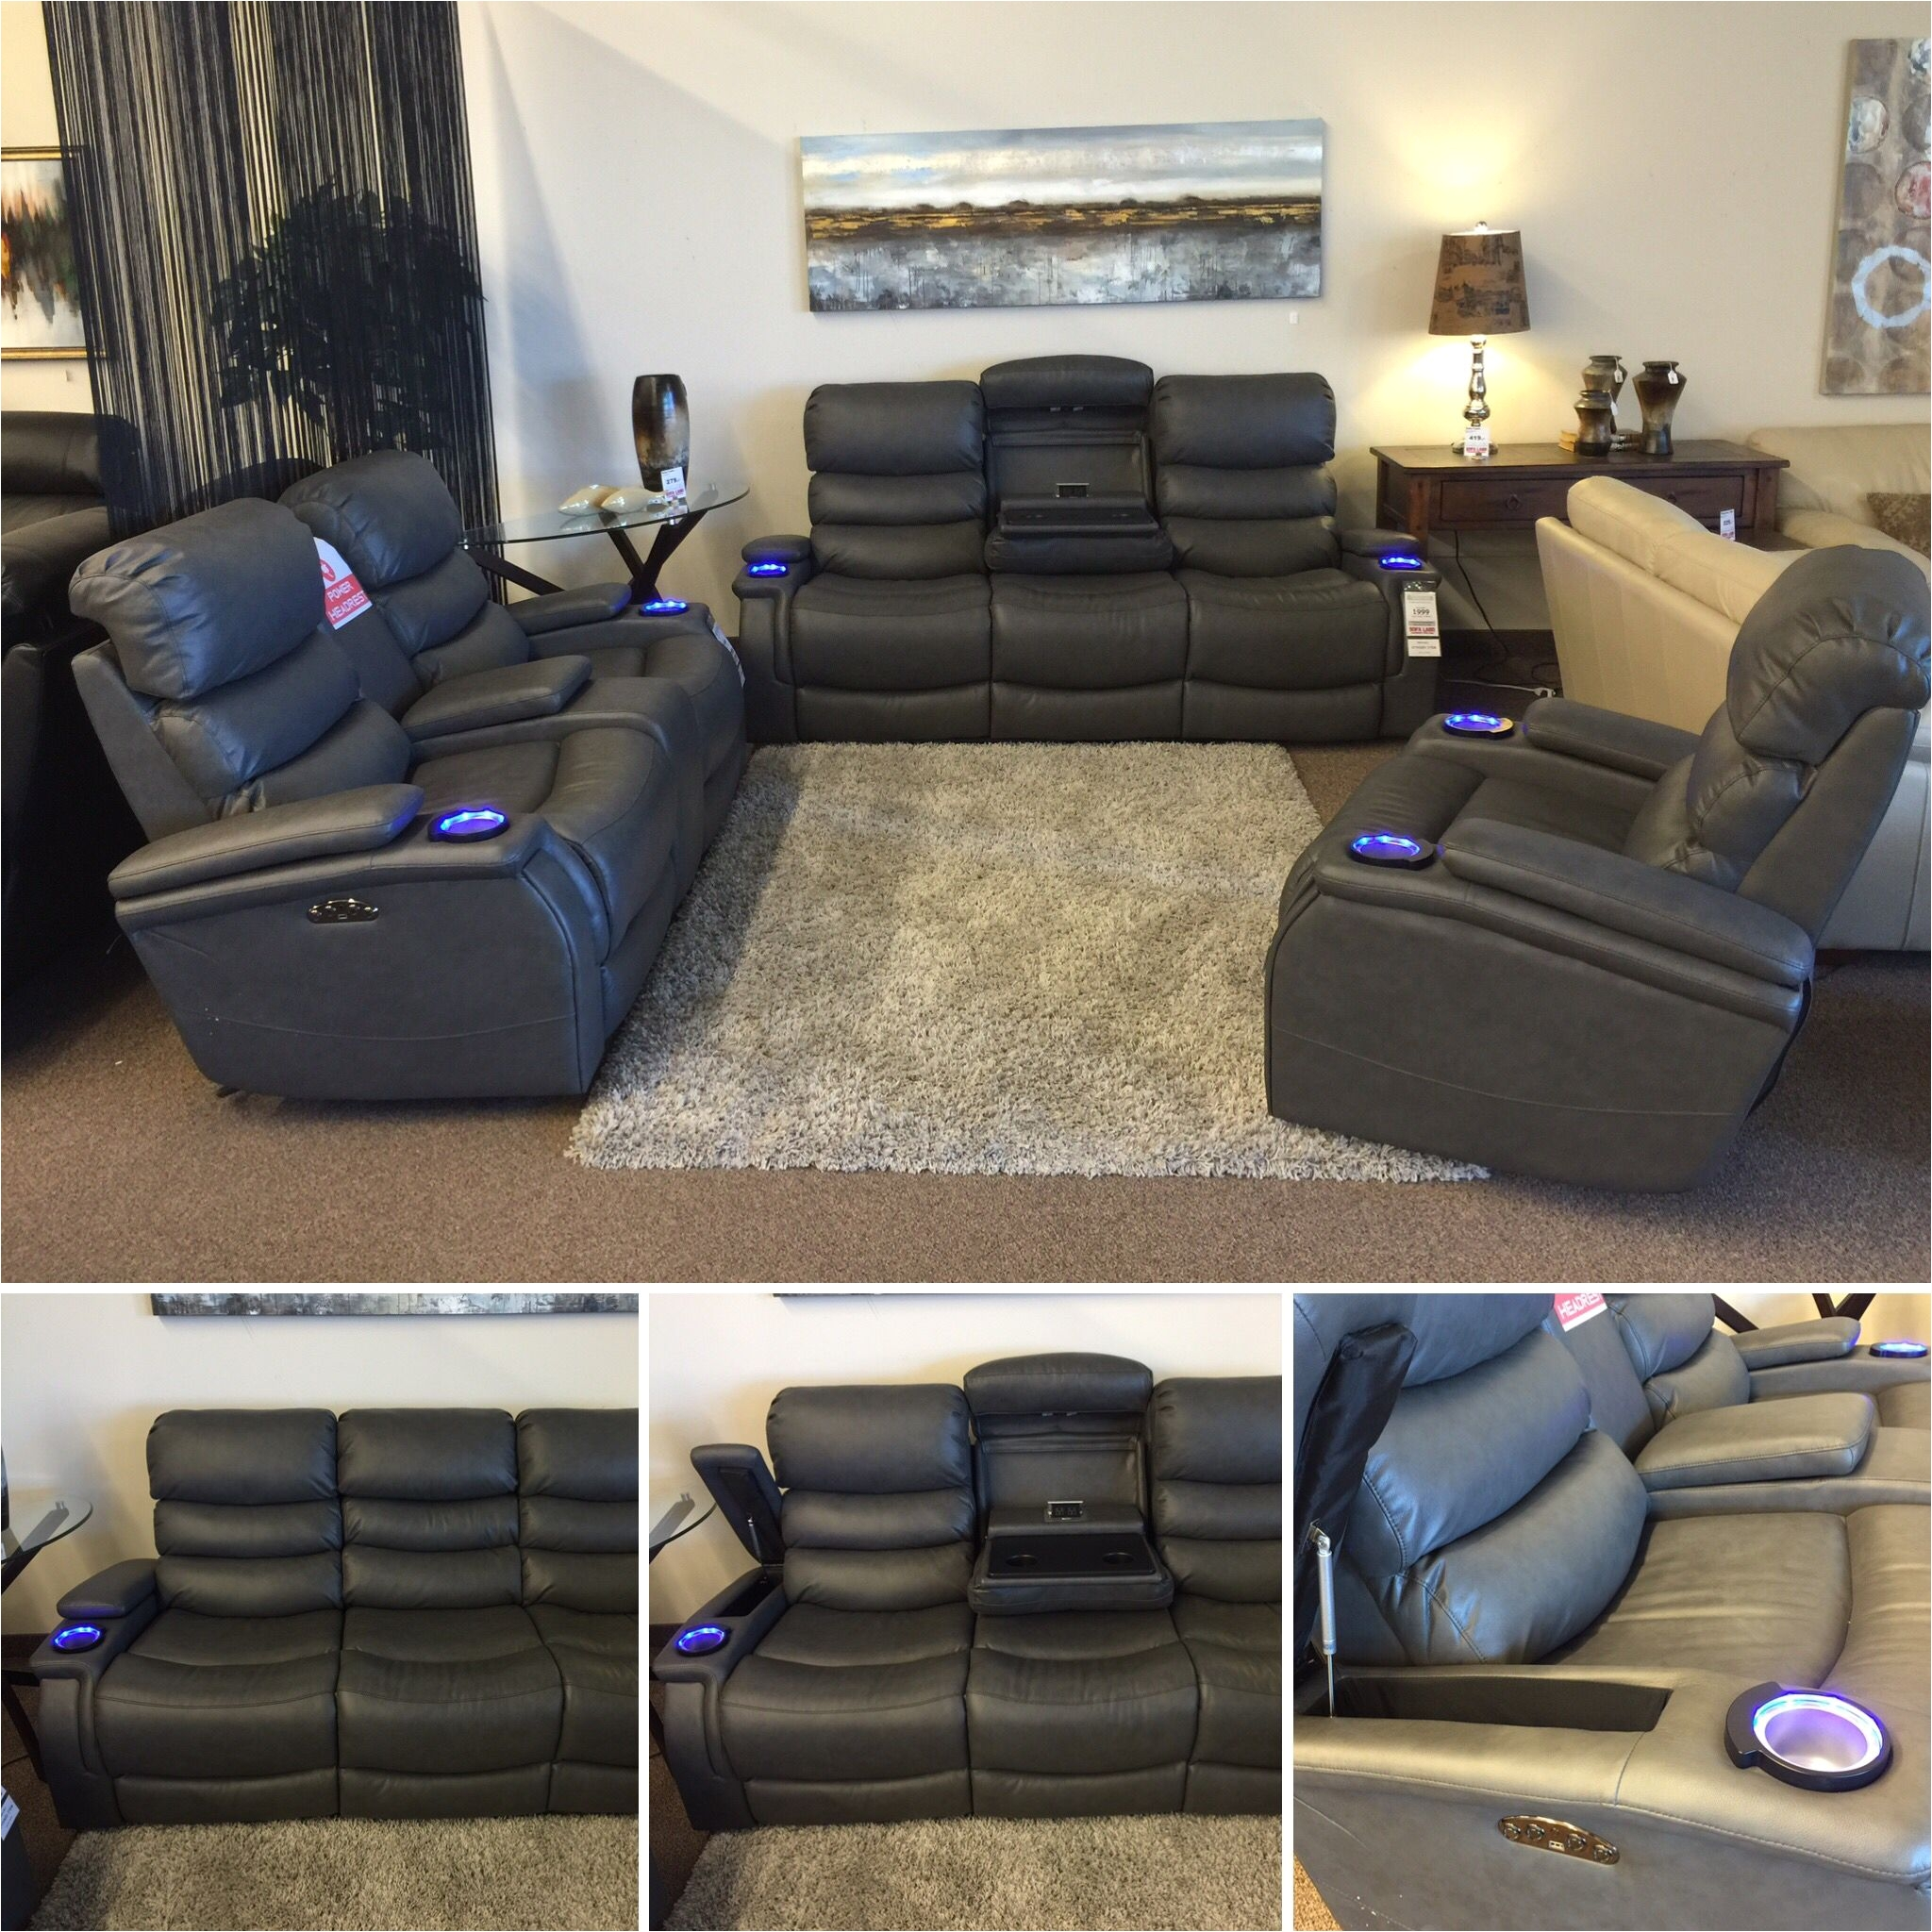 this sofa is so awesome power recline power adjustable headrests led cup holders